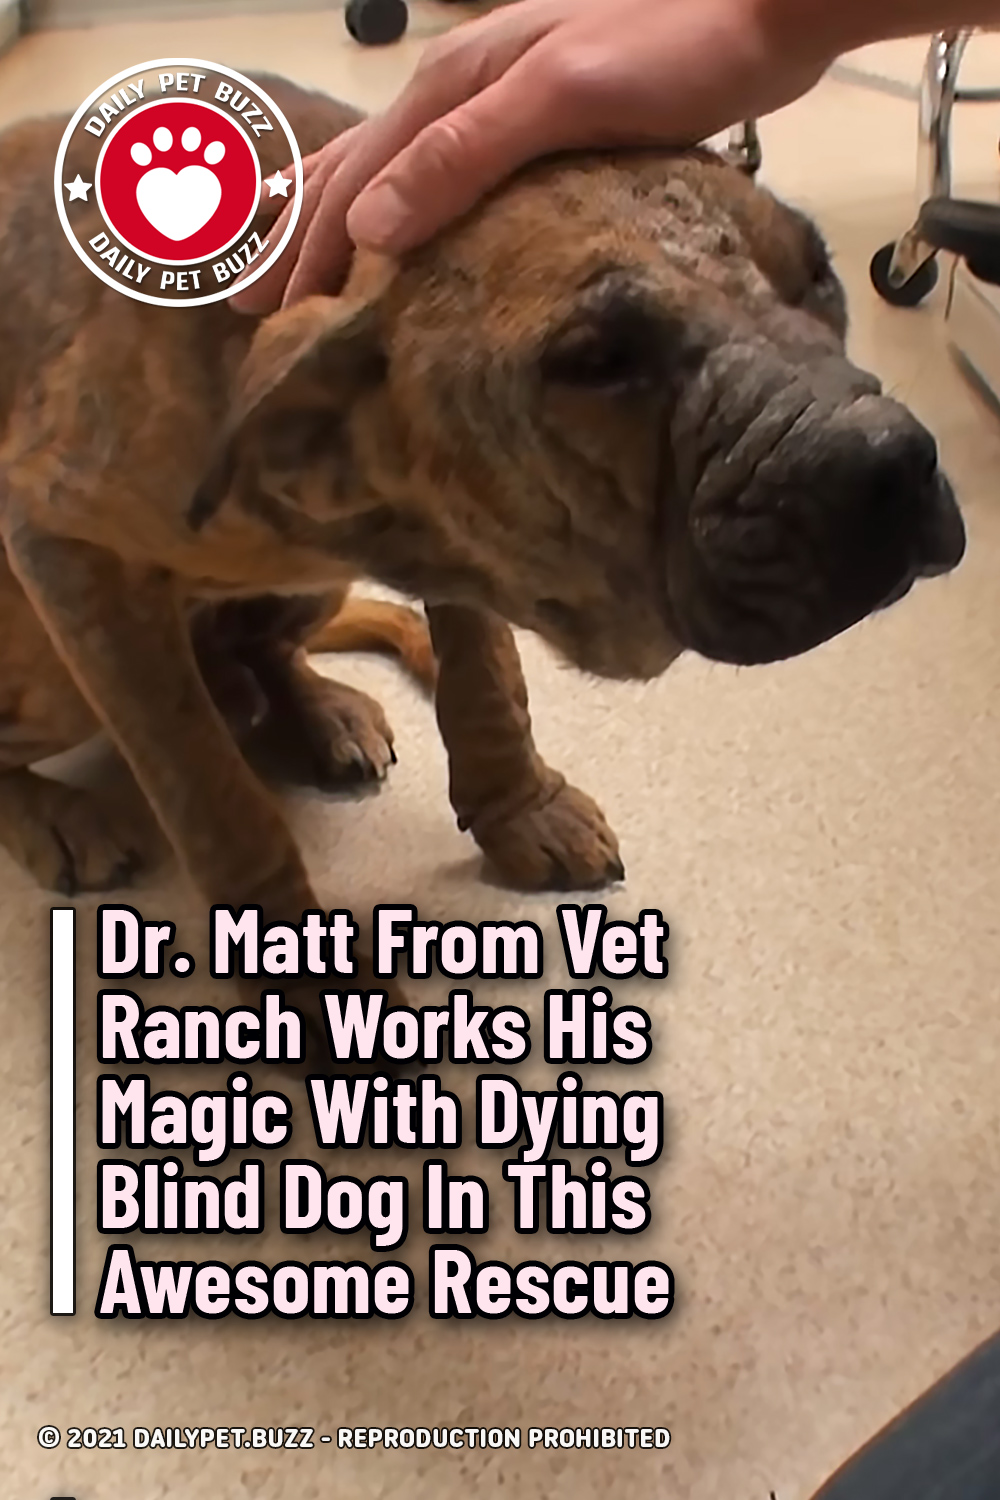 Dr. Matt From Vet Ranch Works His Magic With Dying Blind Dog In This Awesome Rescue